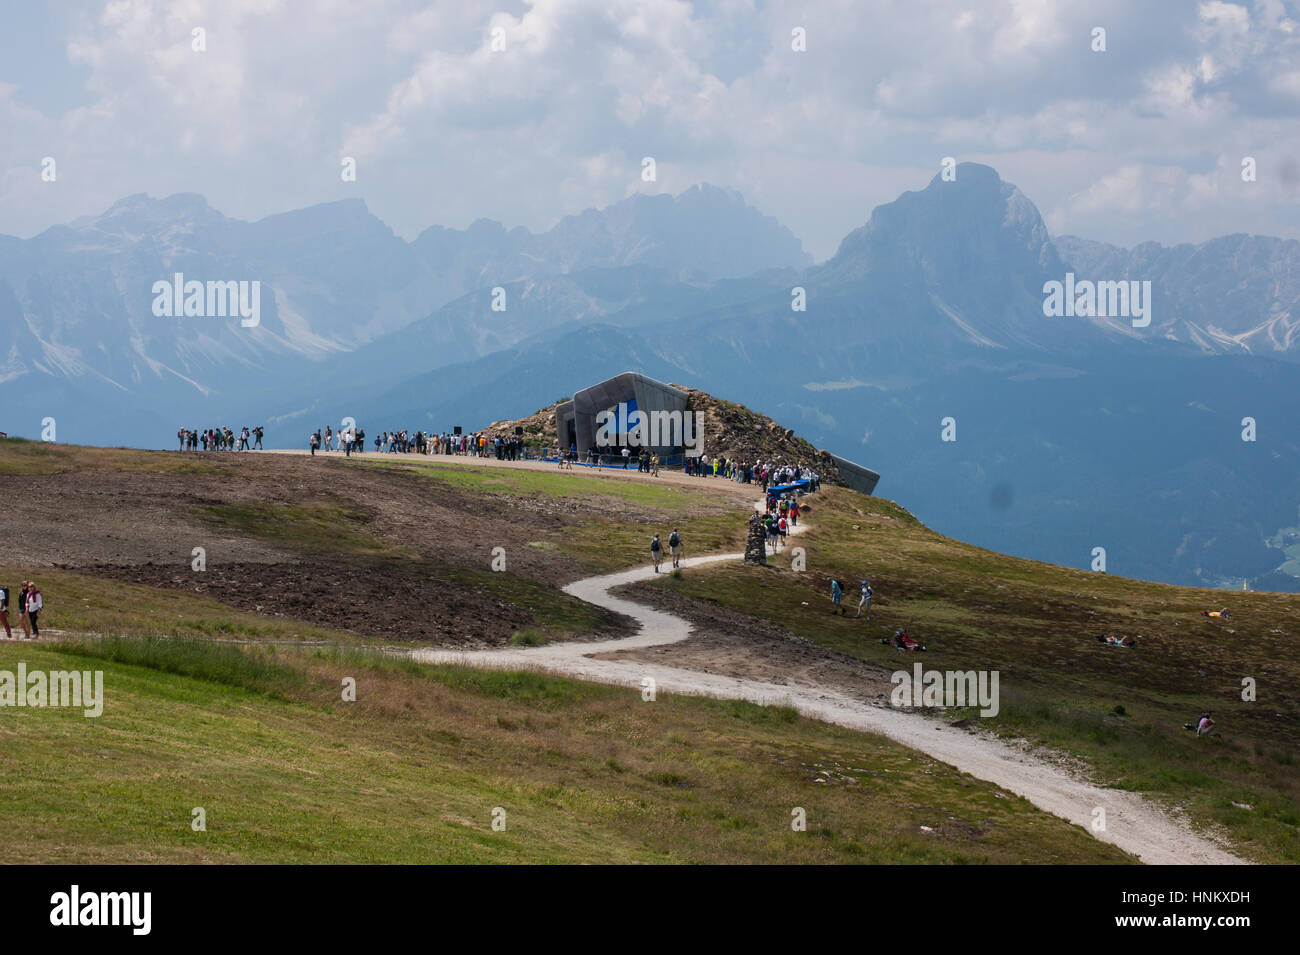 Messner Mountain Museum Corones in the Italian Alps designed by Zaha Hadid Architects, view with the Dolomites panorama - Stock Image